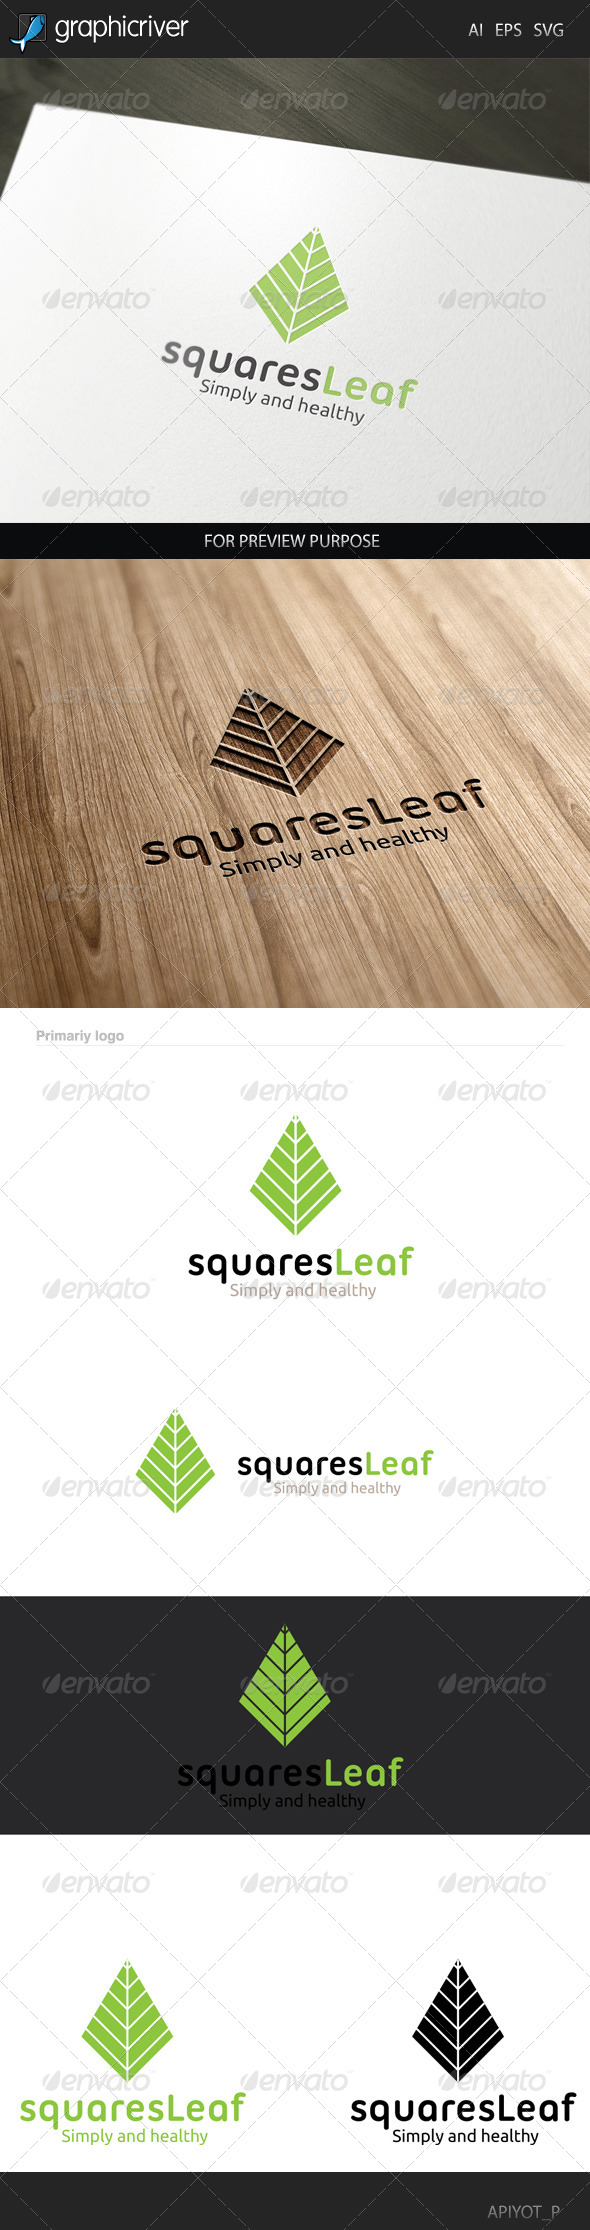 GraphicRiver Squares Leaf Logo 8433432